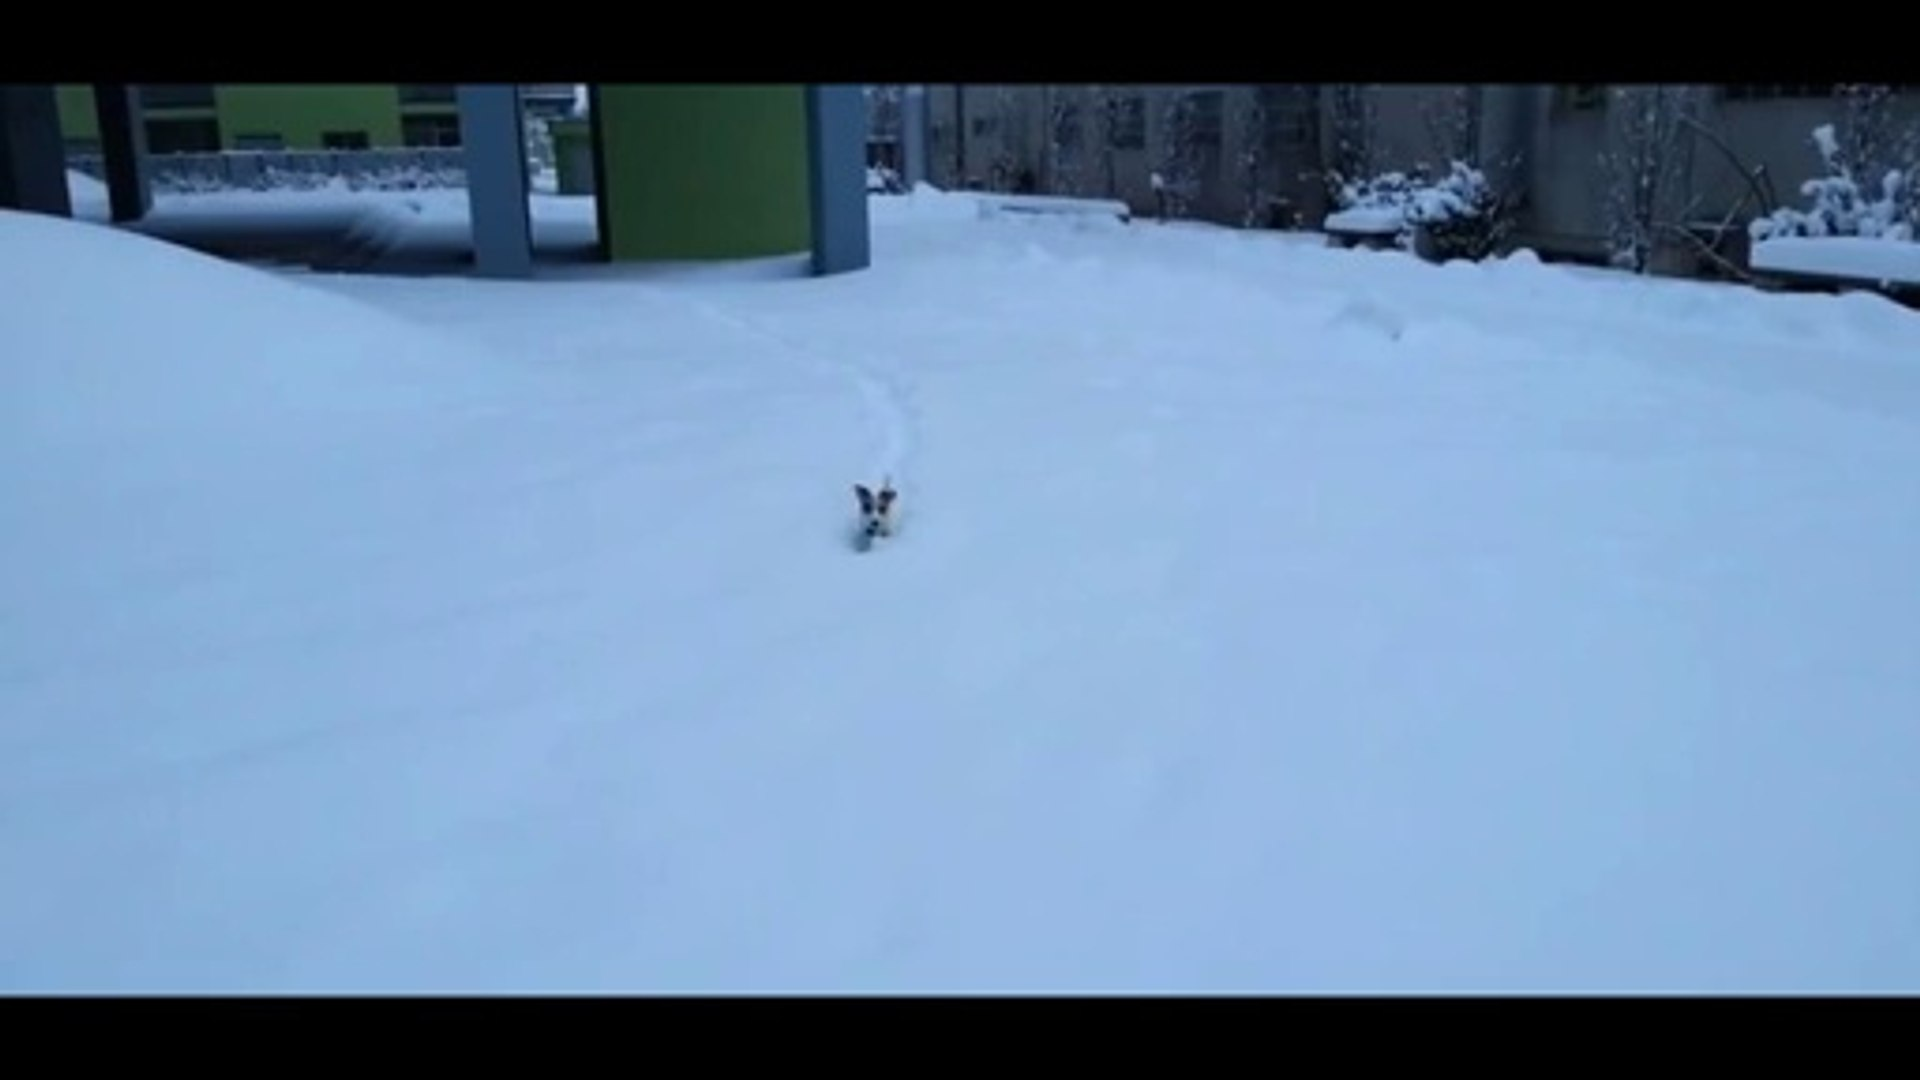 Cute Small Dog Jumping In Snow - Funny Dogs - Cute Dogs